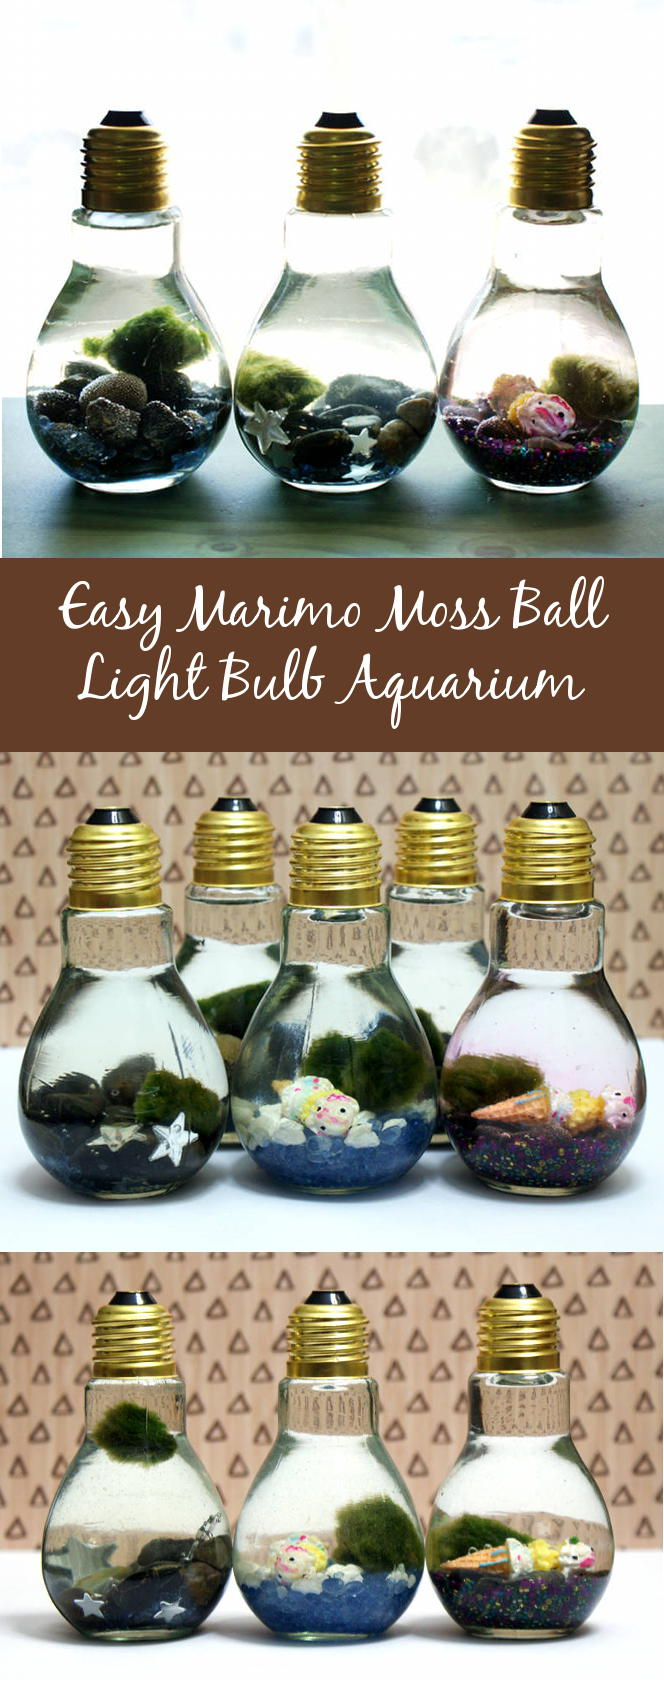 Learn how to make your own easy Marimo moss ball DIY light bulb aquarium! These tiny aquariums make a great home for tiny Japanese Marimo moss balls! Not only is each DIY light bulb aquarium super cute, but they are perfectly sized to sit at your desk or night to keep you company!